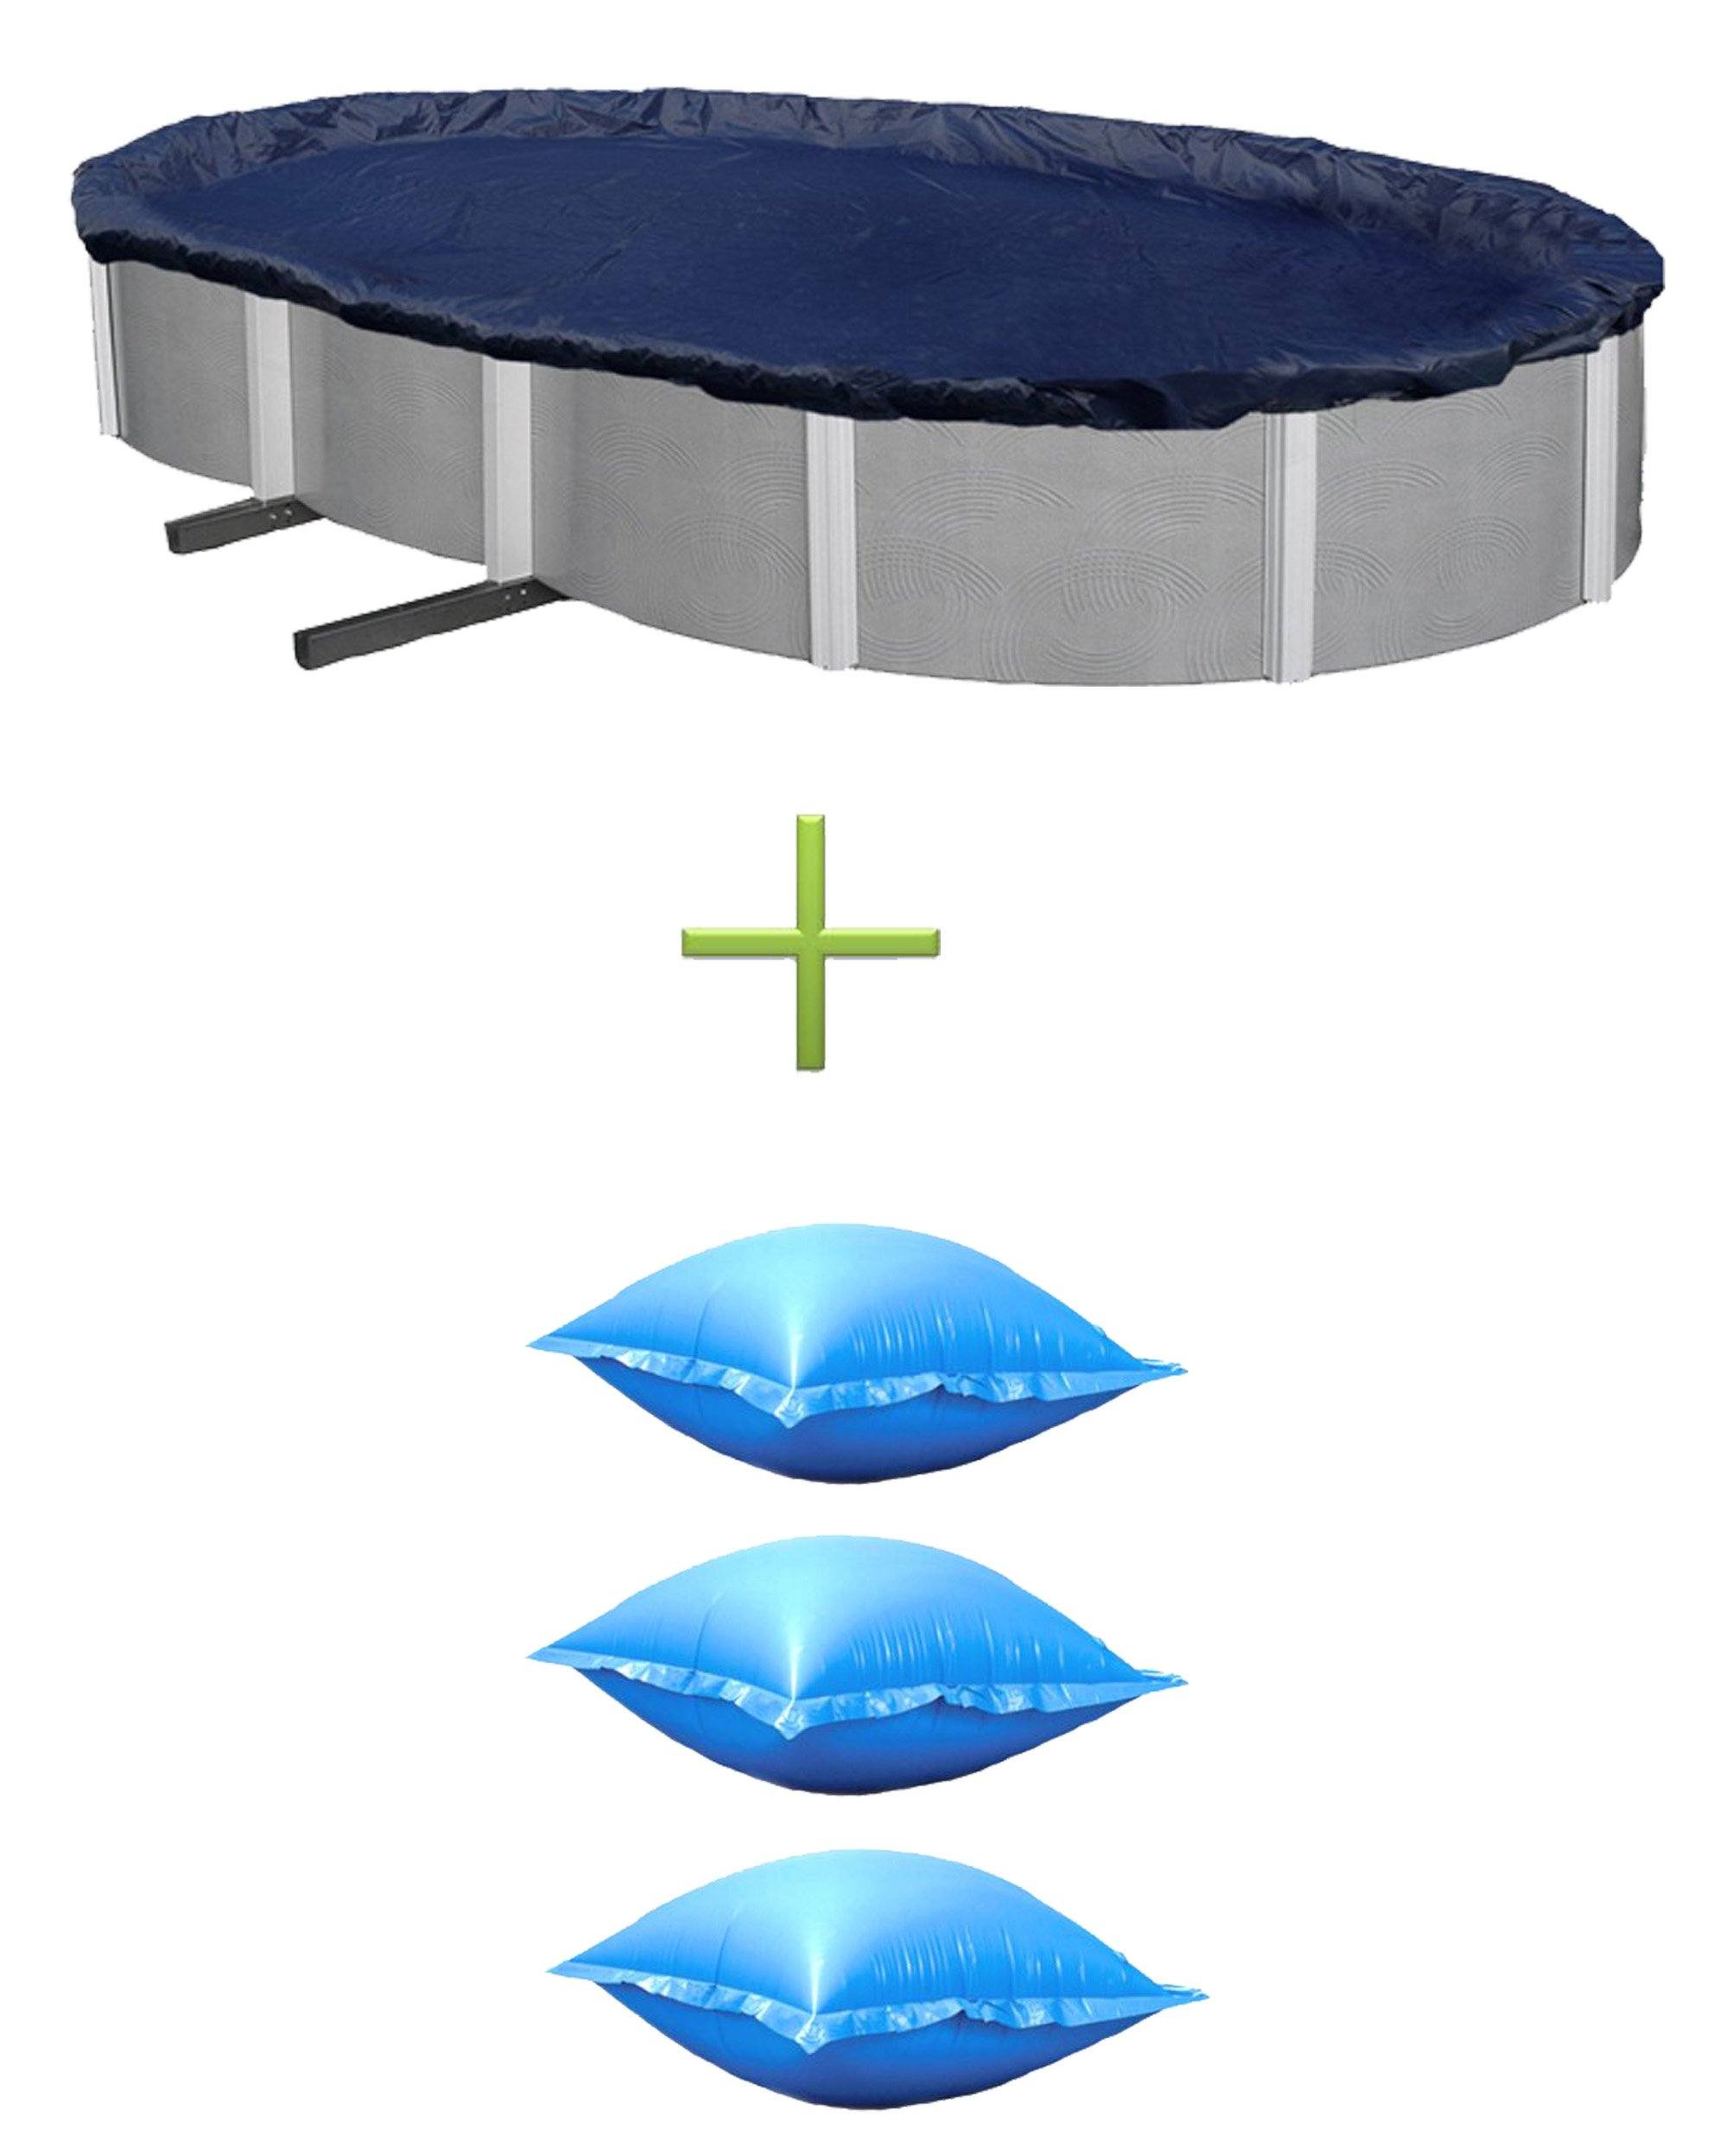 Swimline 18x34 Silver/Black Oval Above Ground Pool Cover + 3) Winter Air Pillows